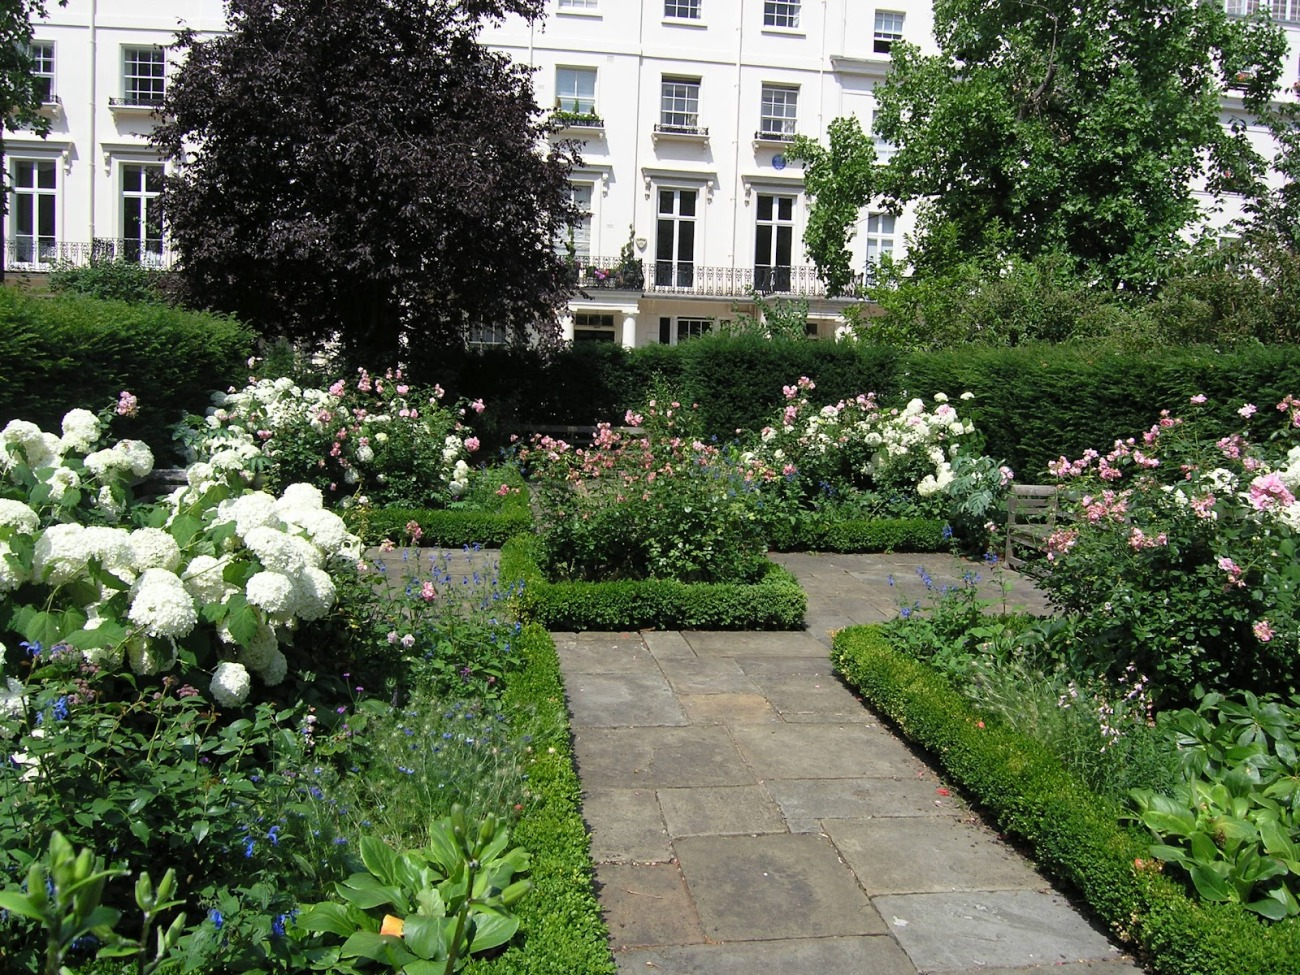 Bonnington Square Garden, en Londres